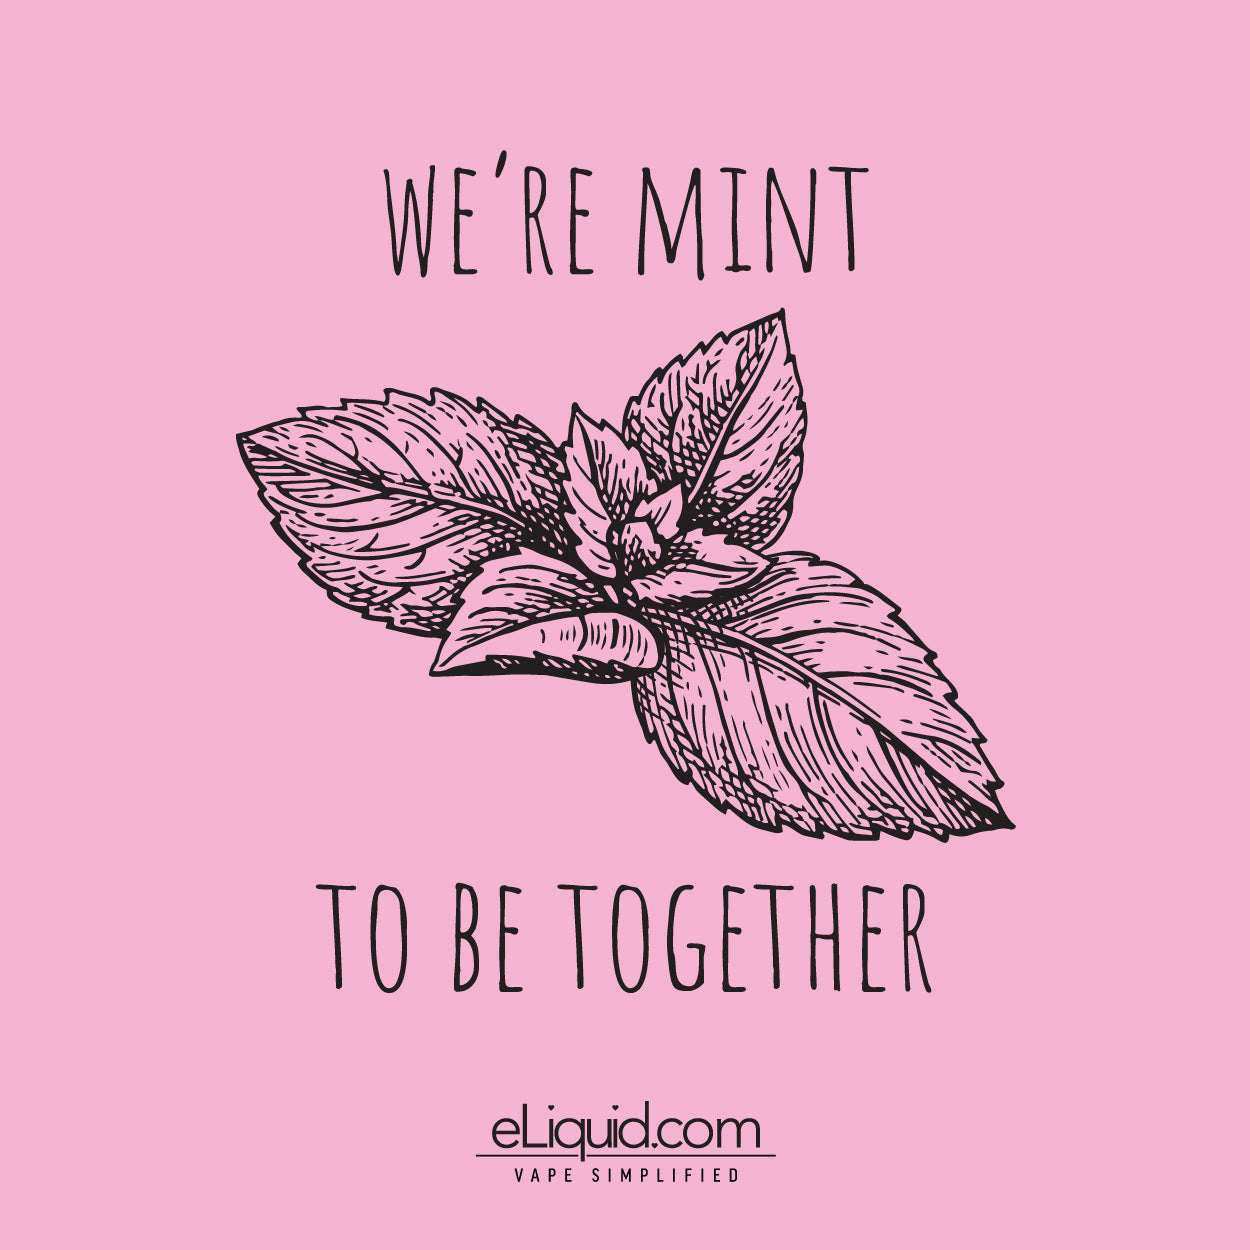 We're mint to be together